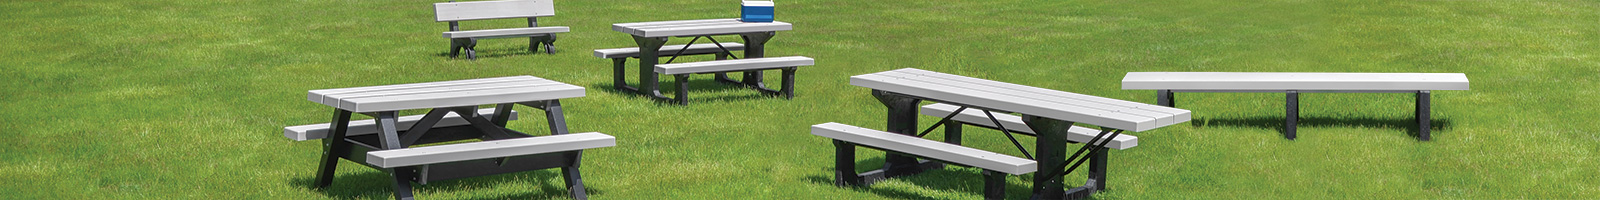 BarcoBoard Plastic Furniture Collection